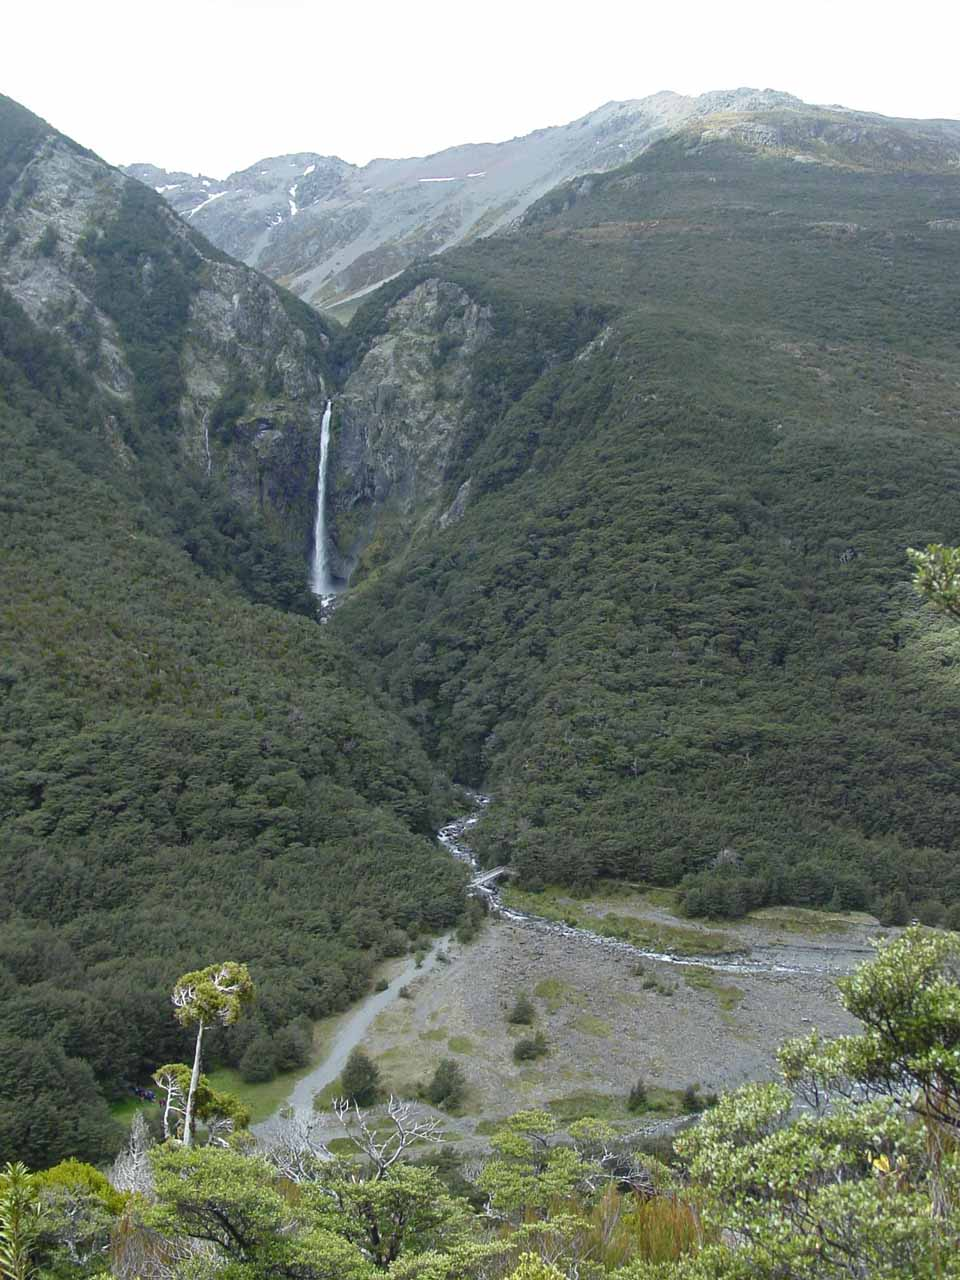 Contextual look across the valley towards Devils Punchbowl Falls and the delta at the mouth of its gorge